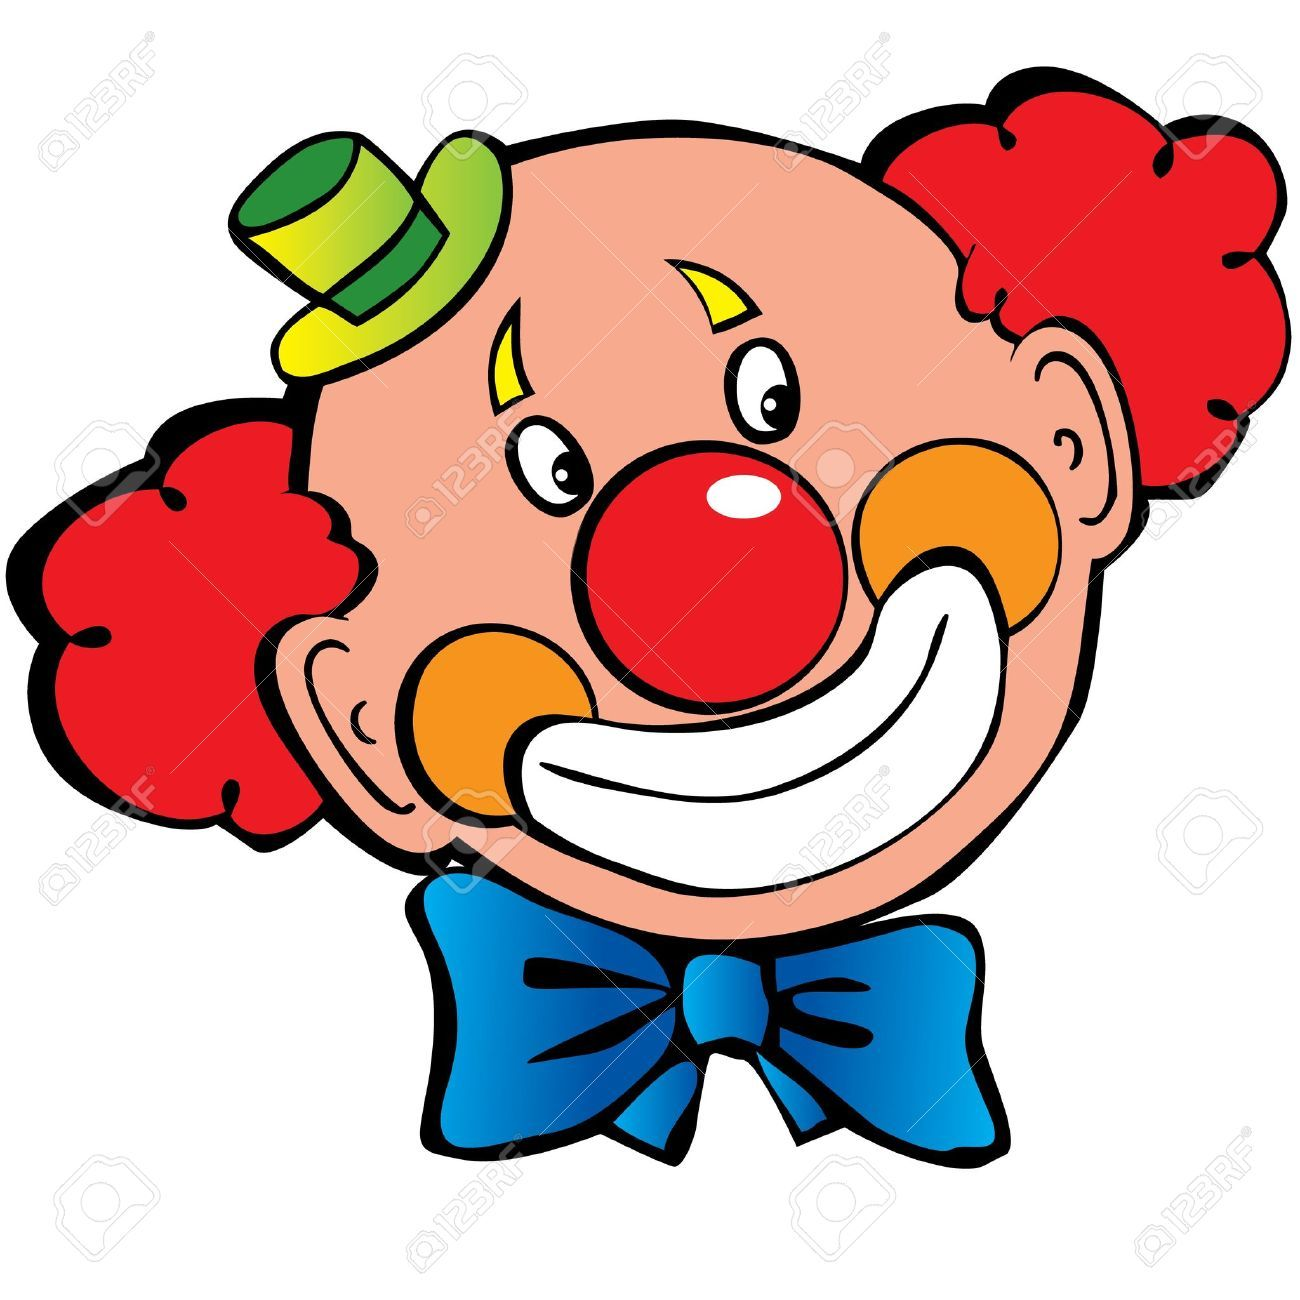 image of clown face clipart 9 free clown clipart 1 page of rh pinterest ca clip art crowns and tiaras clip art crowns for kings